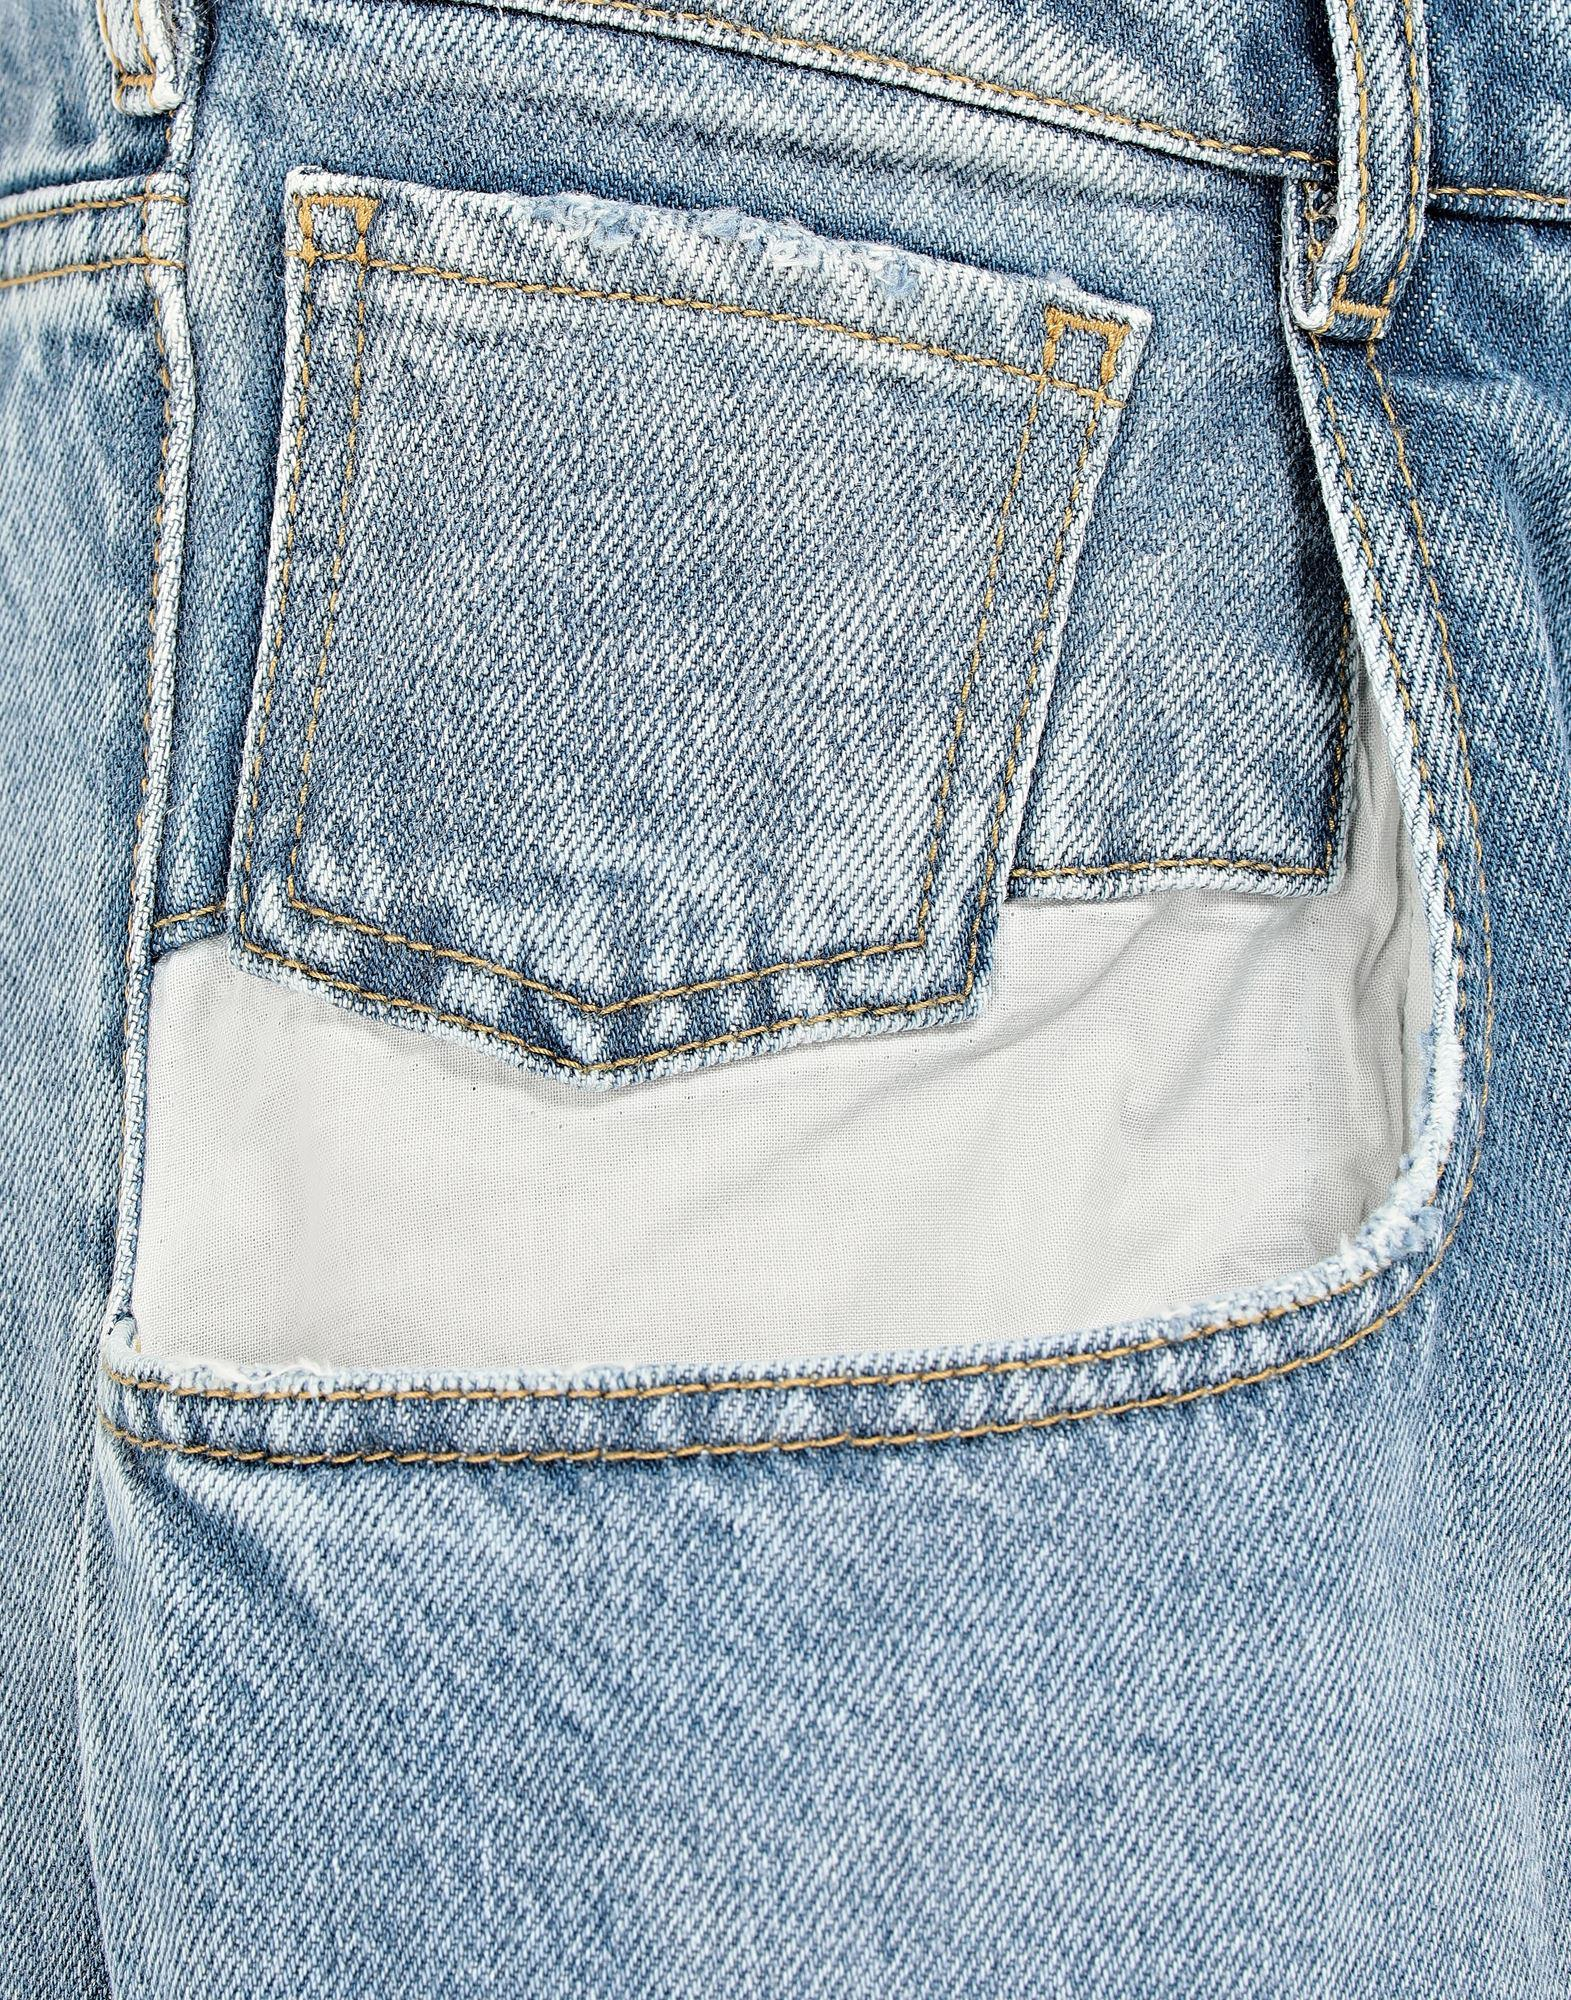 Straight jeans with contrasted pockets 5